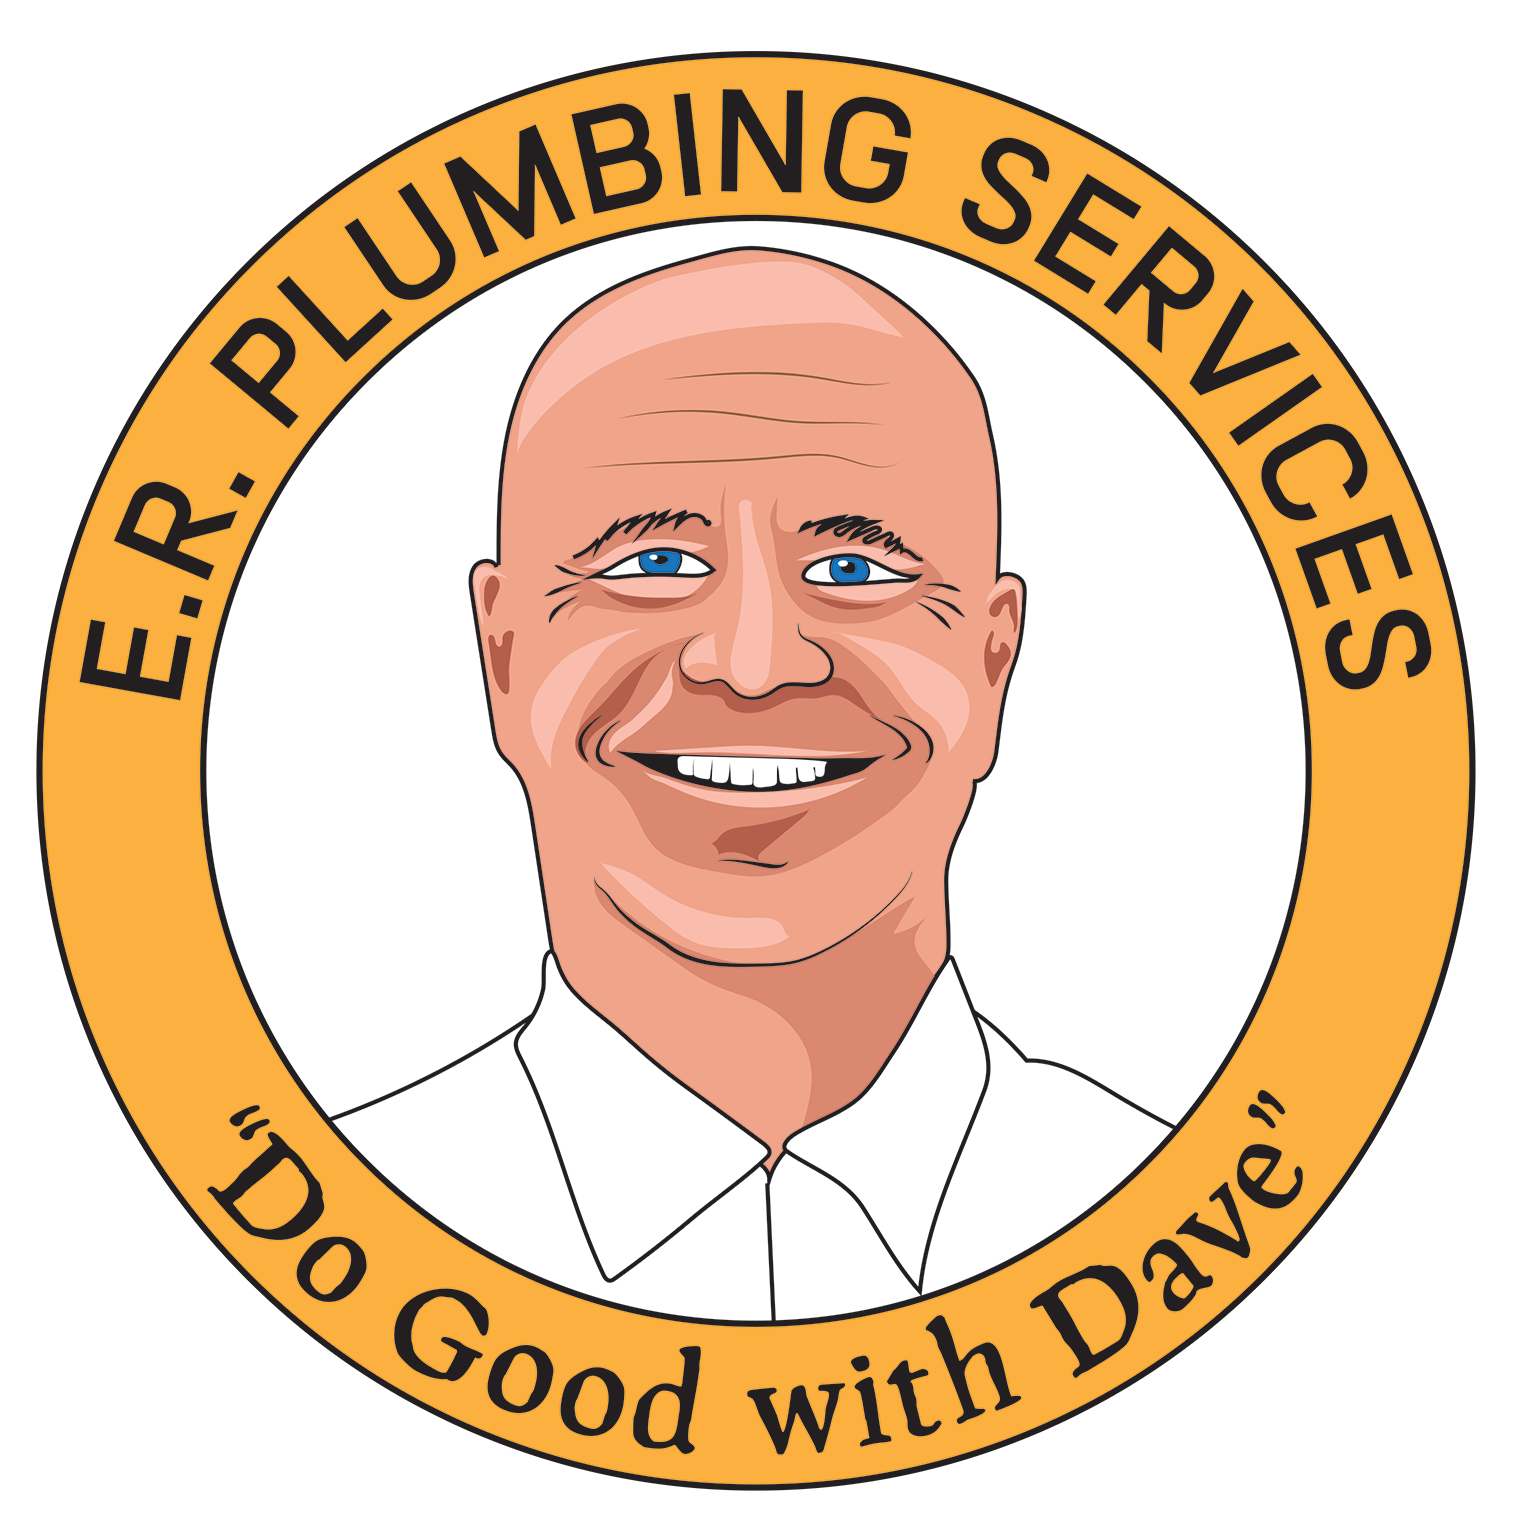 Do Good With Dave Charlotte Plumbing Company